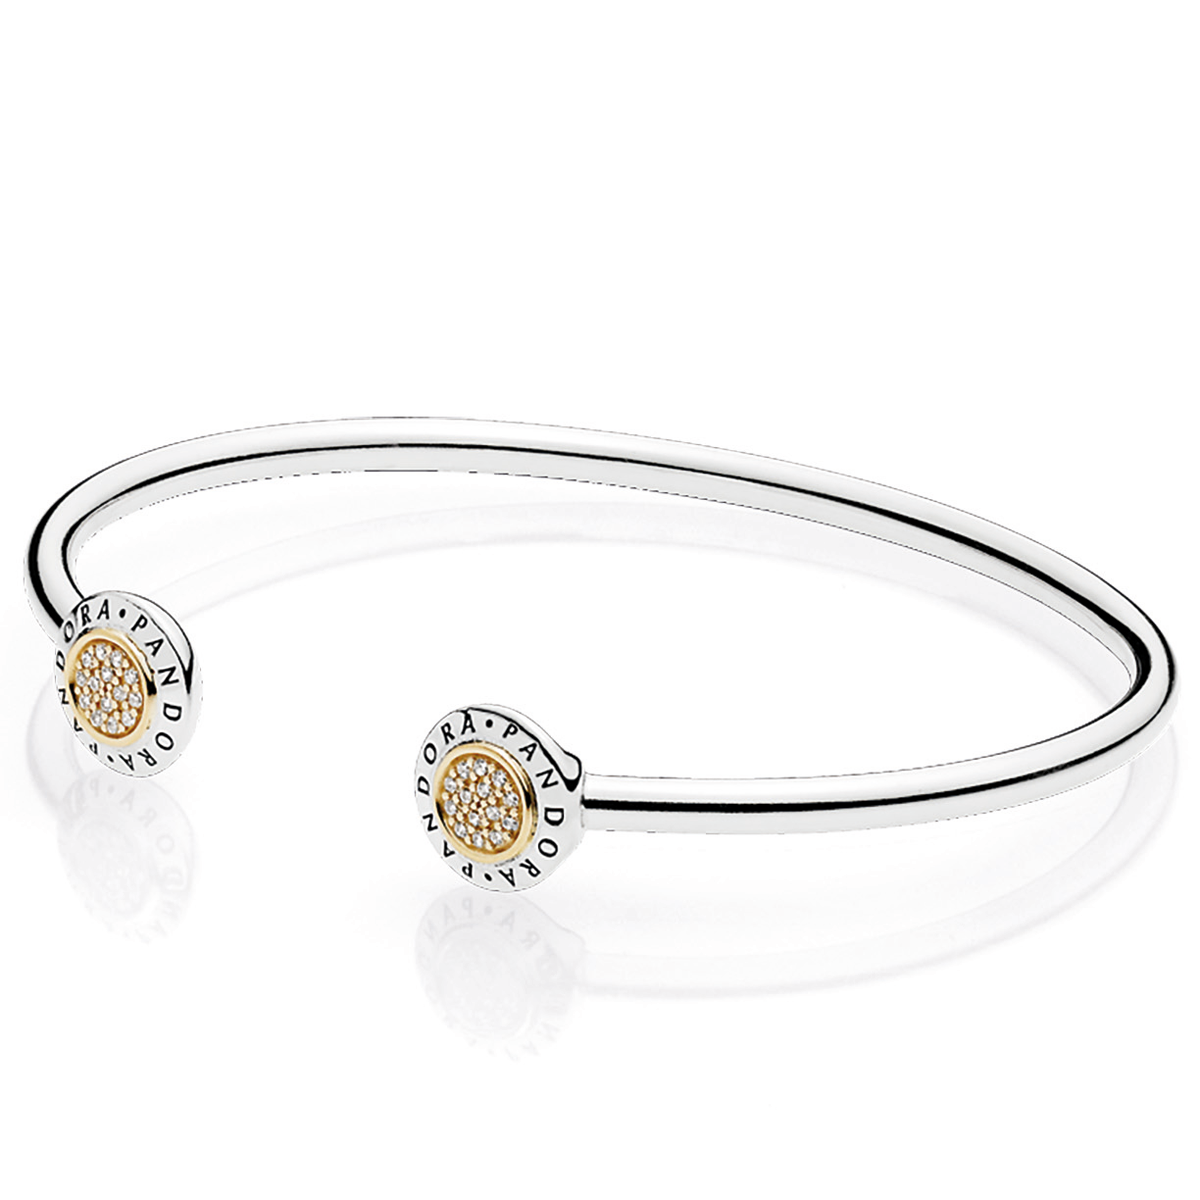 for droplet com fine bracelets women jewellery jewelry nectar kind gold by sapphire annoushka us bracelet wishlist jasmine cuffs shop bangles white